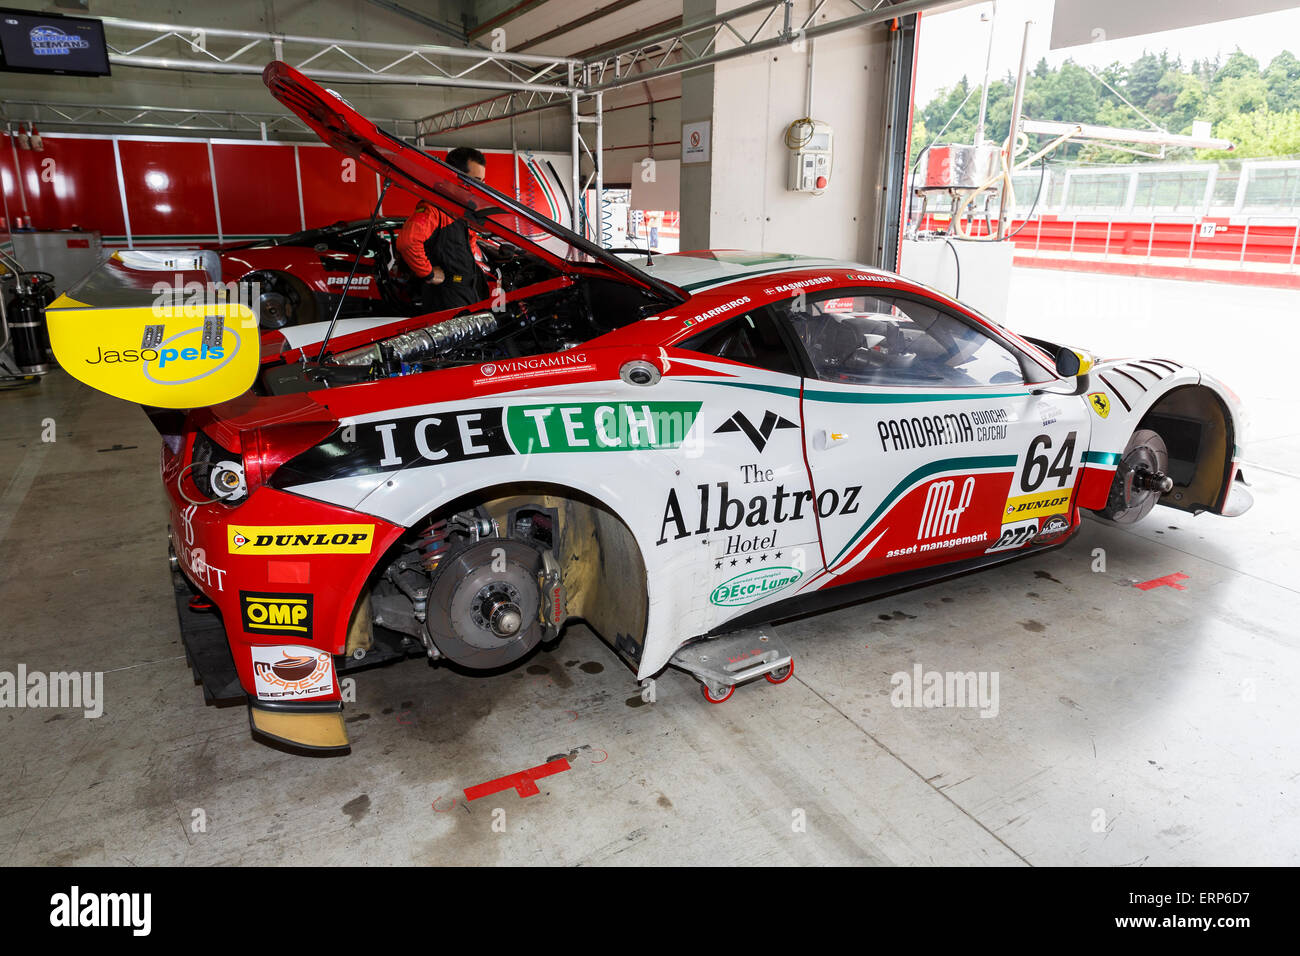 Imola, Italy – May 16, 2015: Ferrari F458 Italia GT3 of Af Corse Team,  in action during the European Le Mans Series Stock Photo